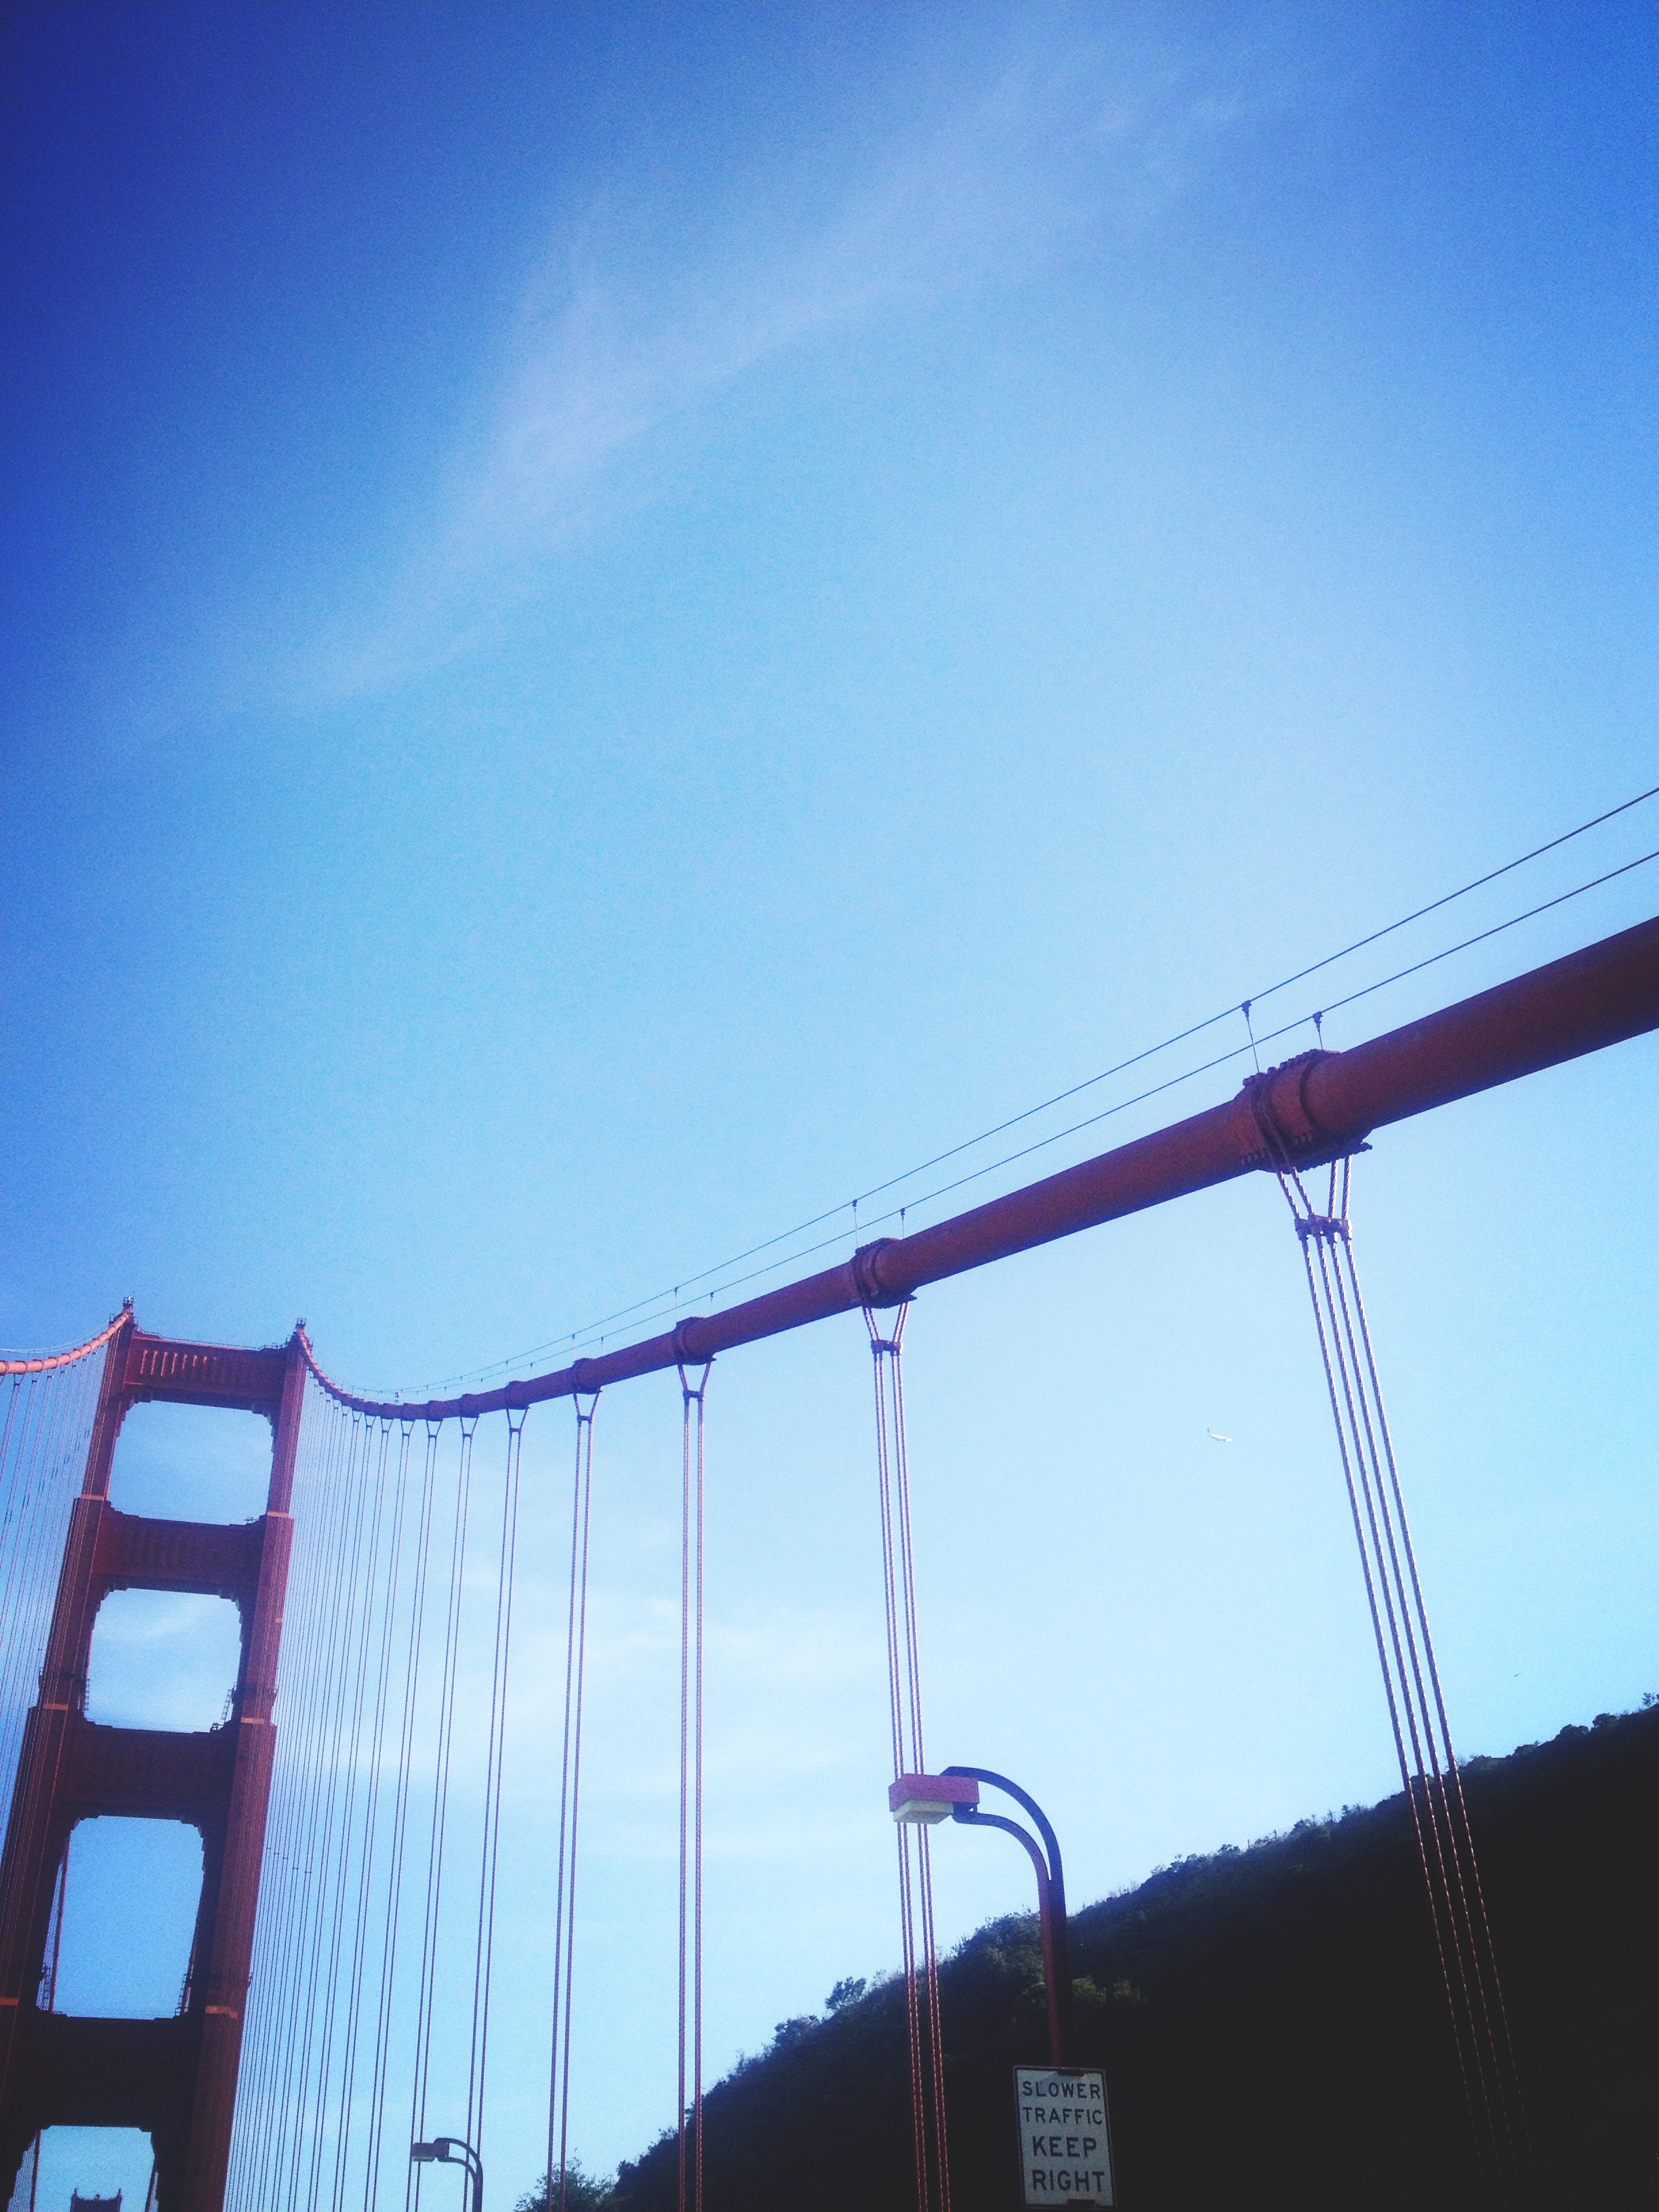 A little trip to say hello to the GGB.